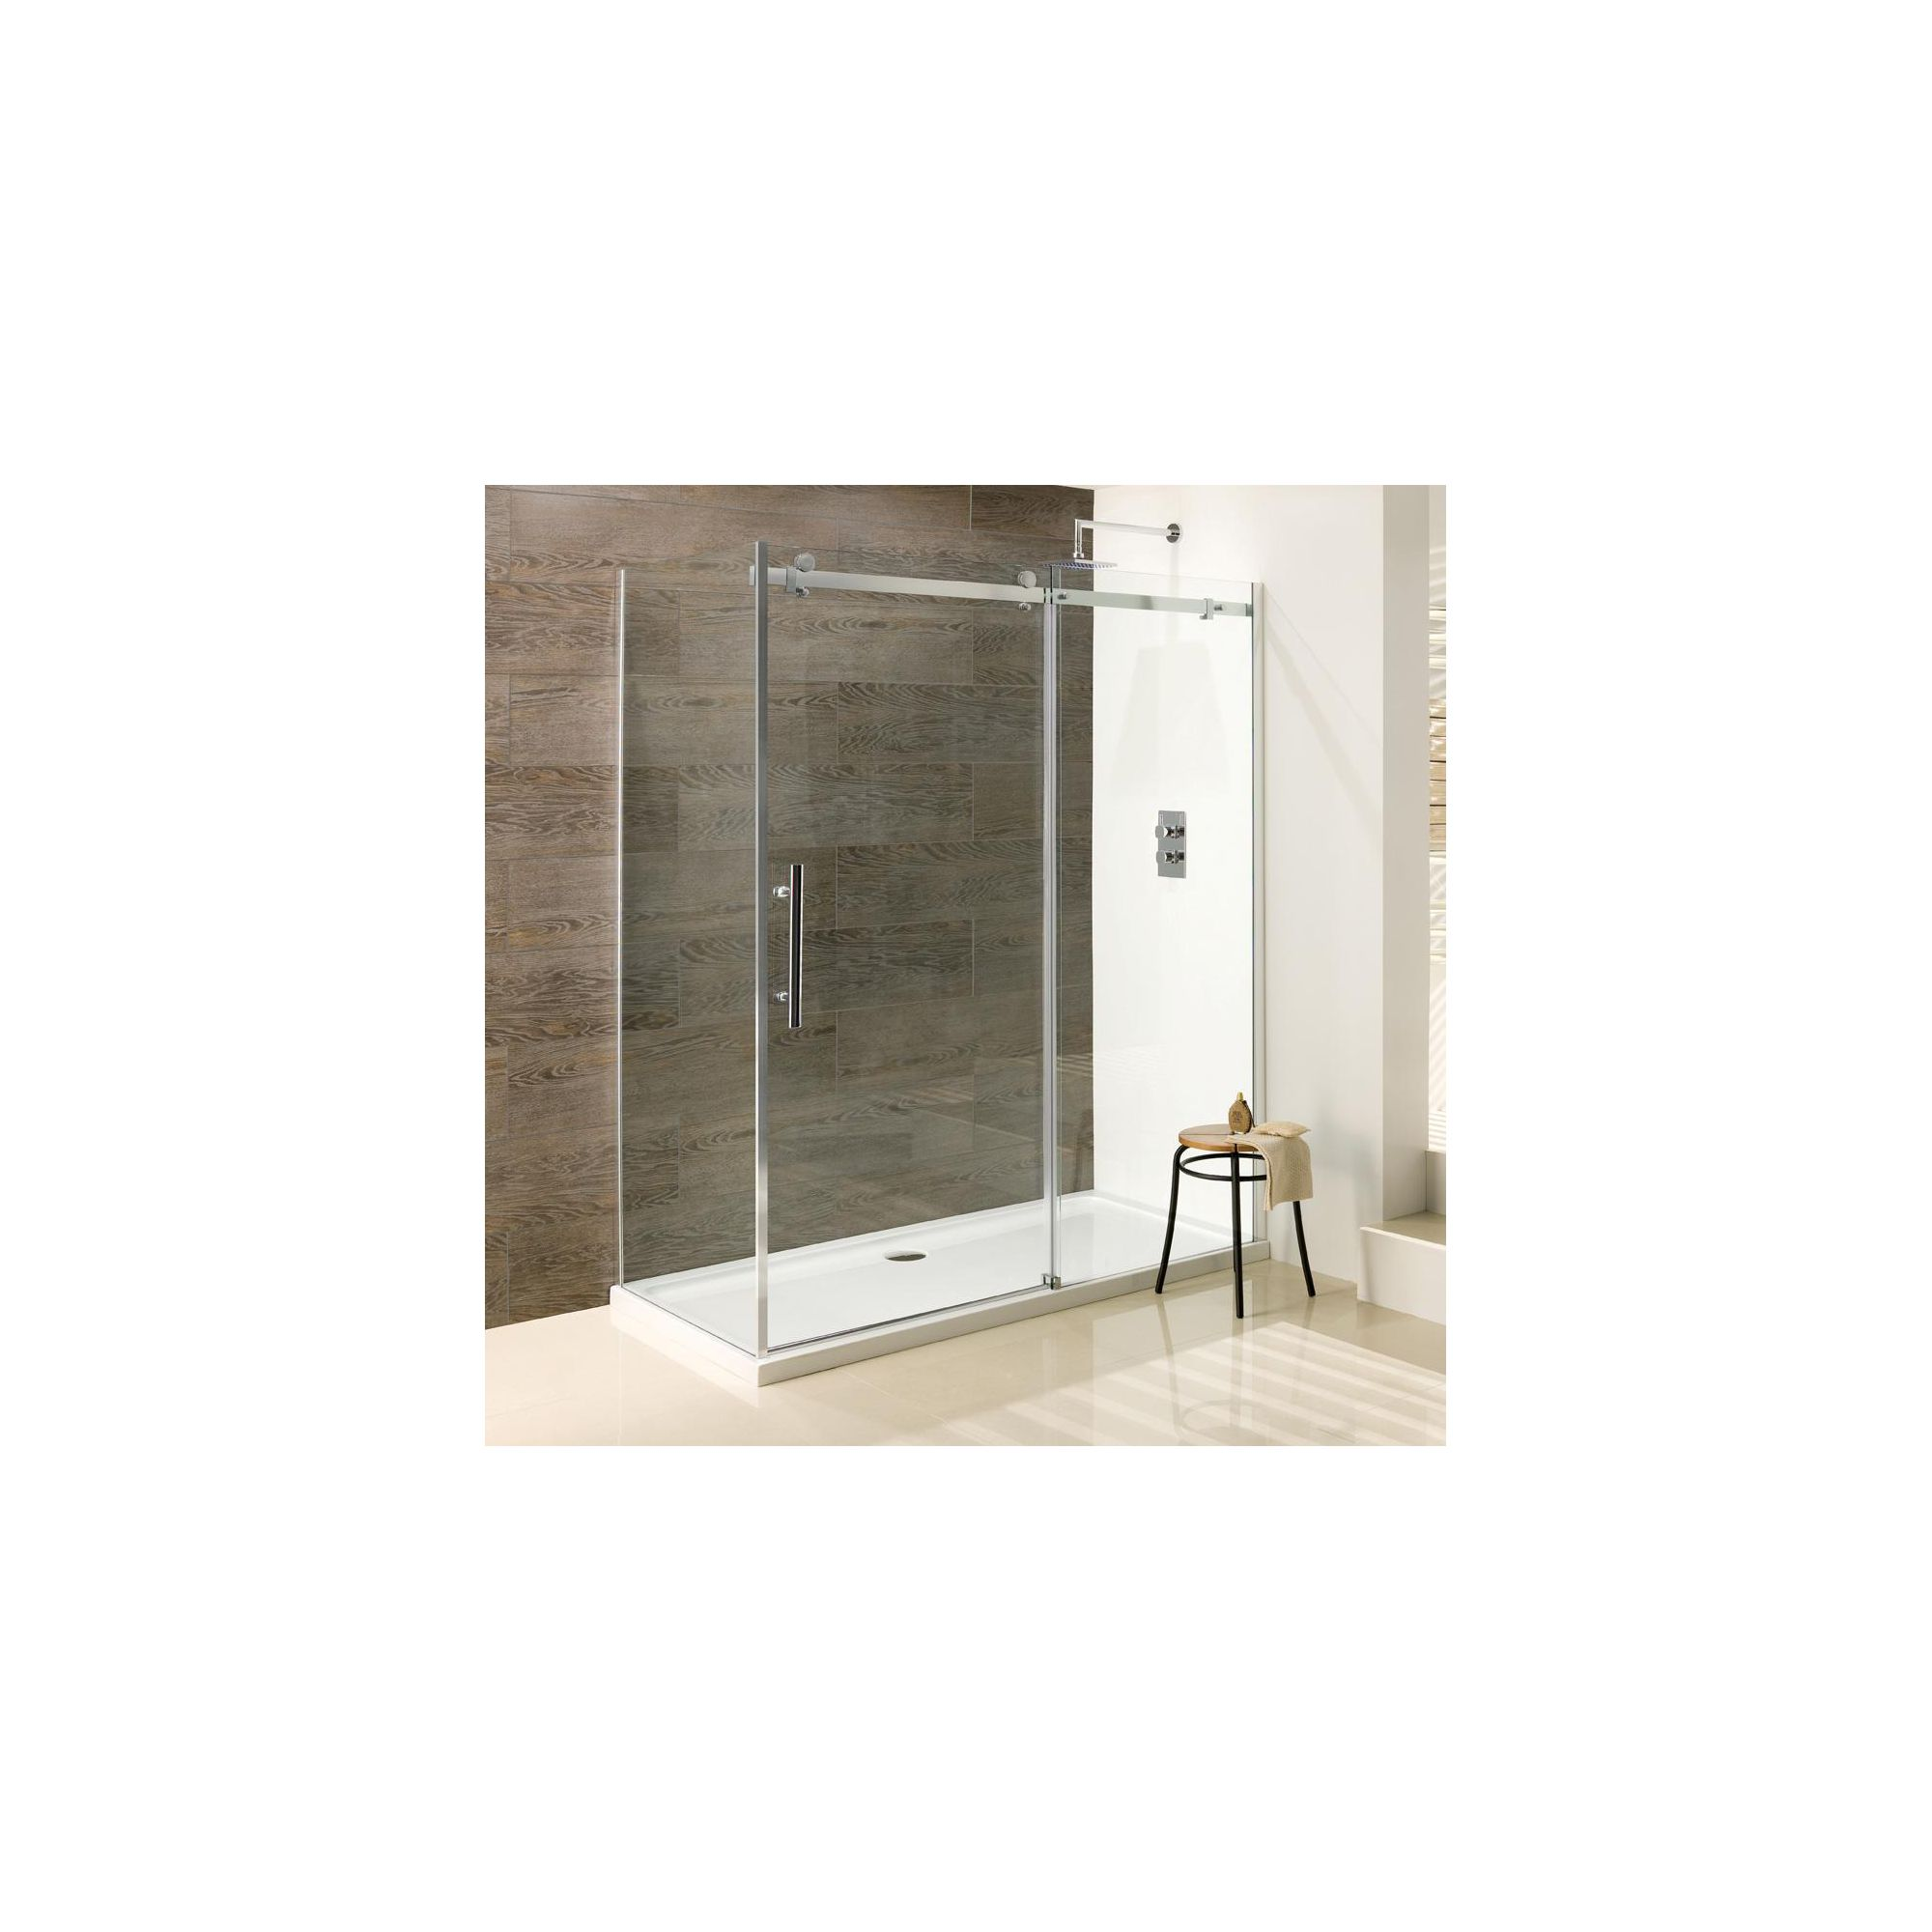 Duchy Deluxe Silver Sliding Door Shower Enclosure with Side Panel 1400mm x 760mm (Complete with Tray), 10mm Glass at Tesco Direct